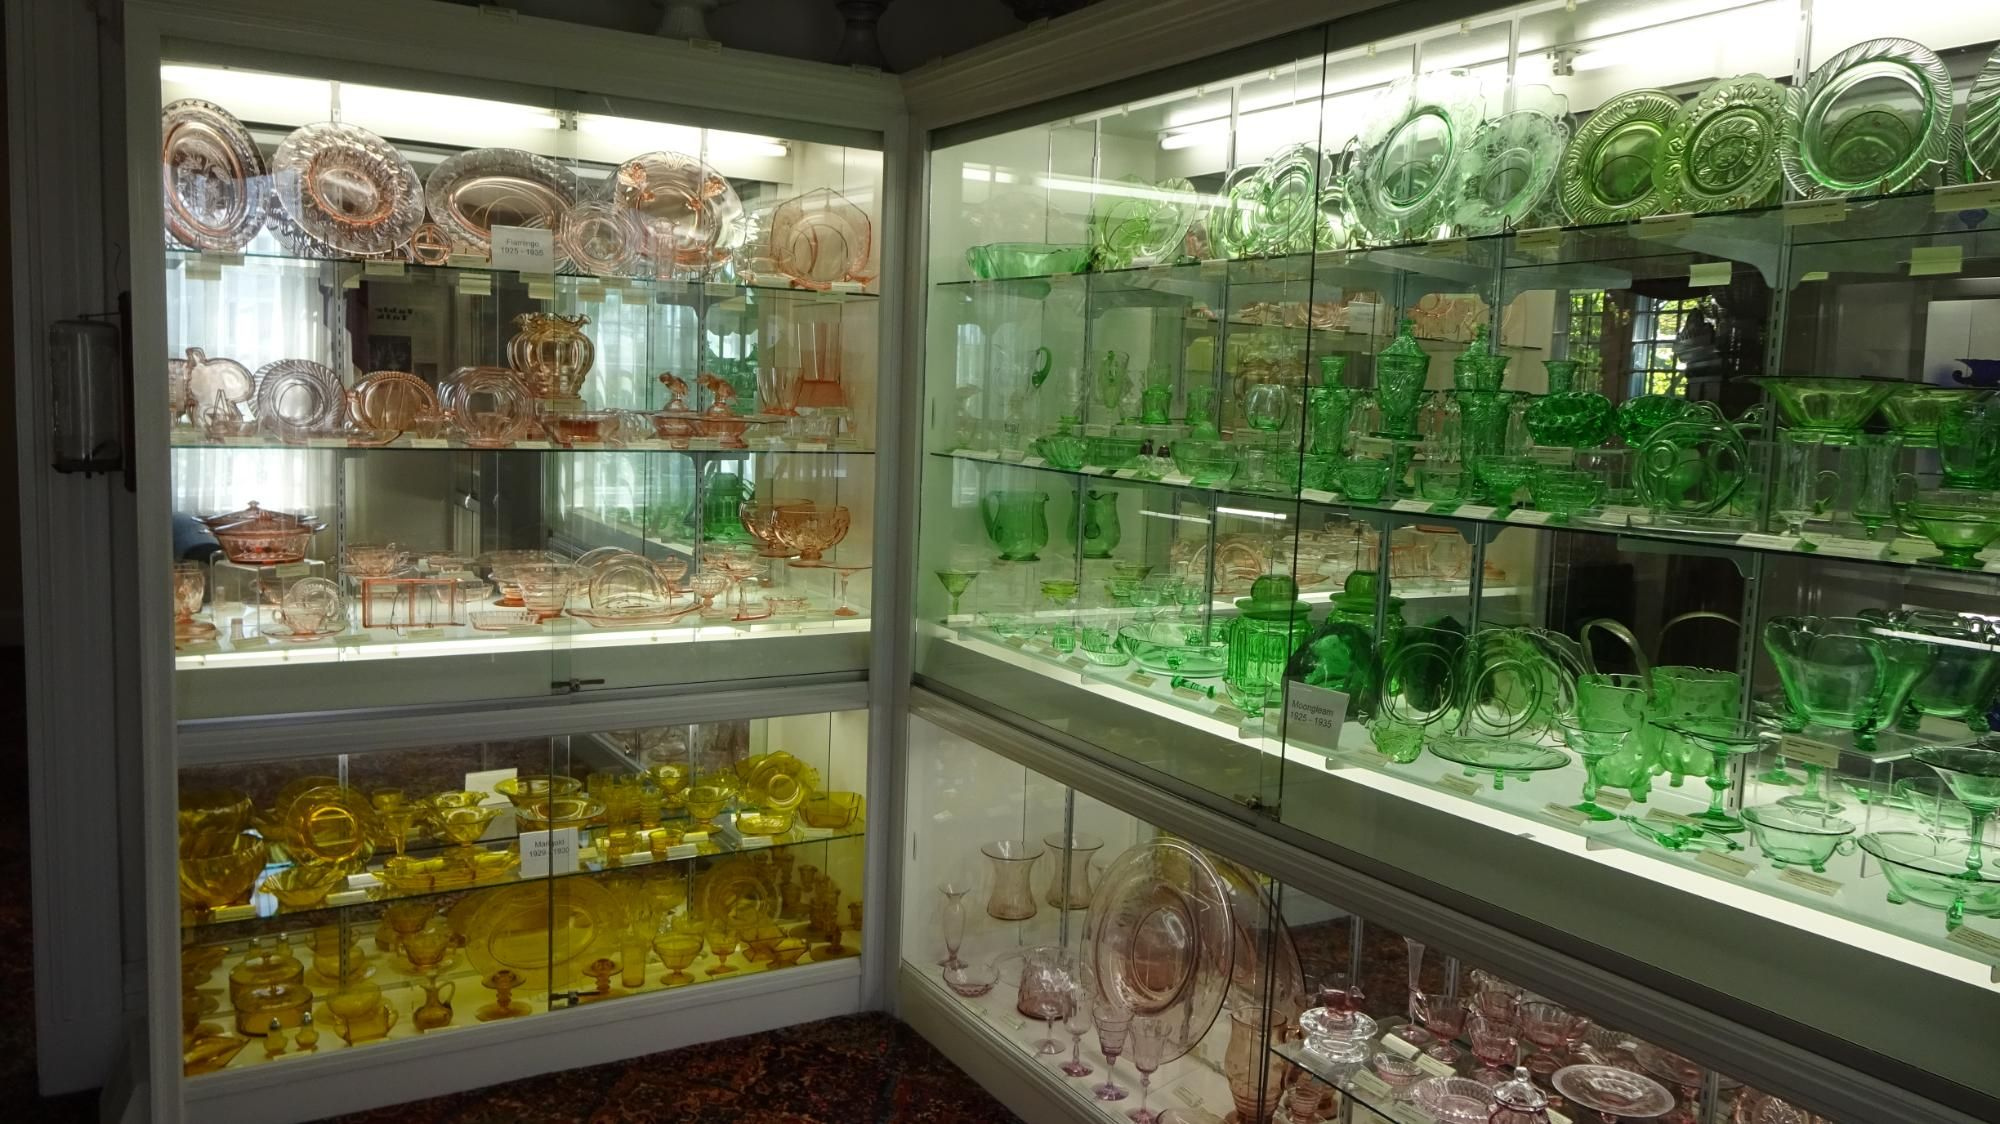 display of red, green, and yellow glass works